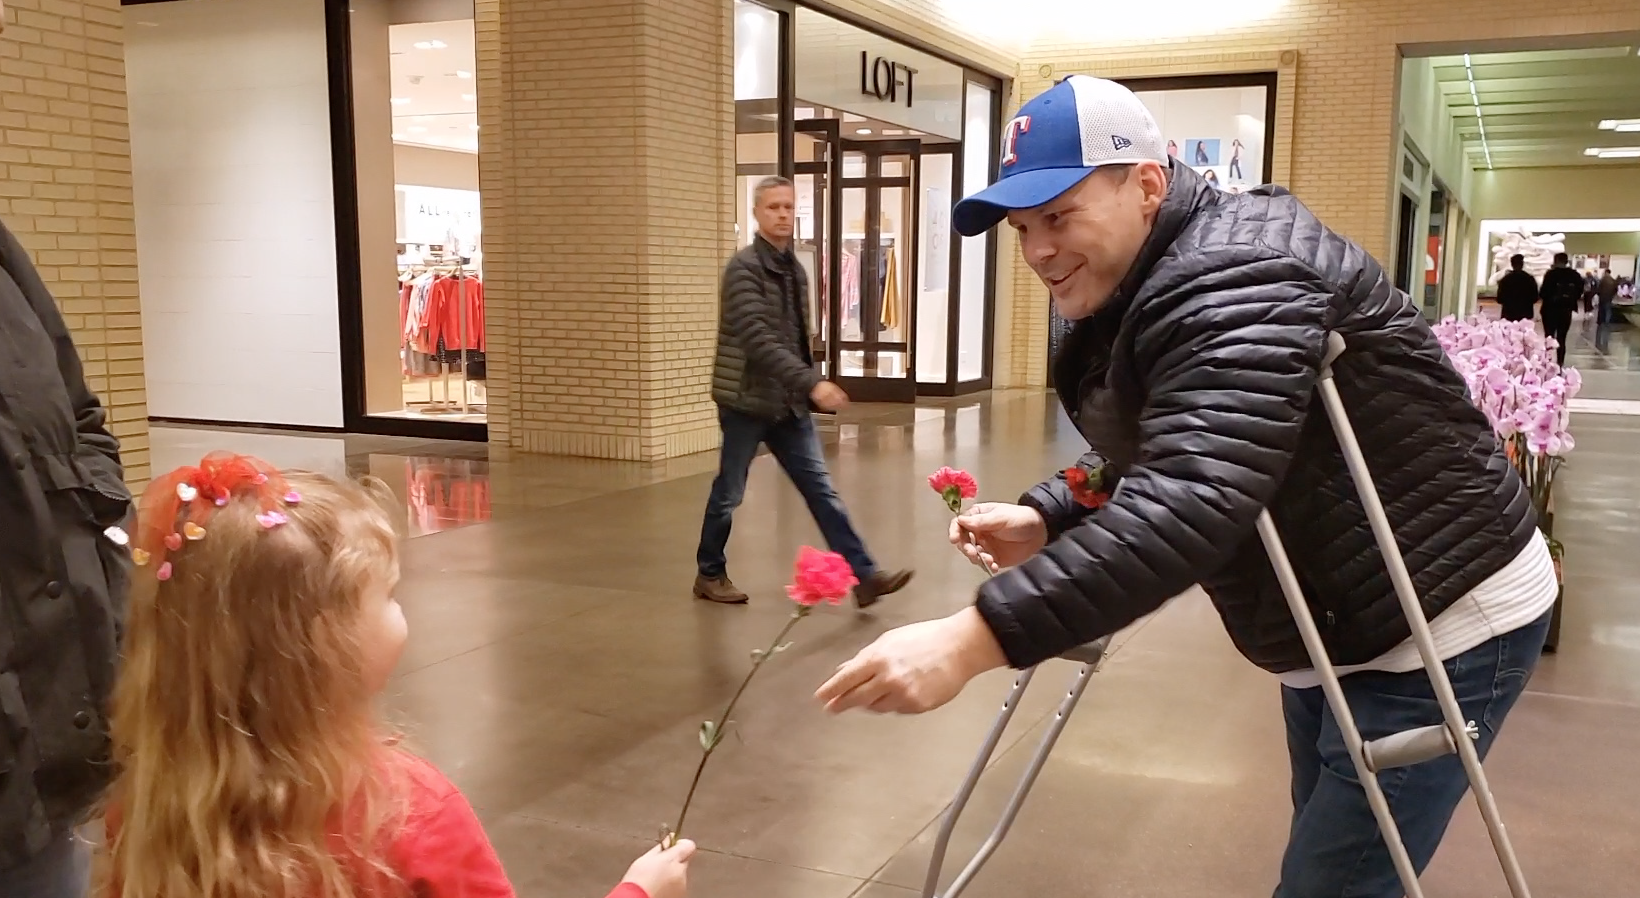 Sid surprises people with flowers at the mall for Valentines Day